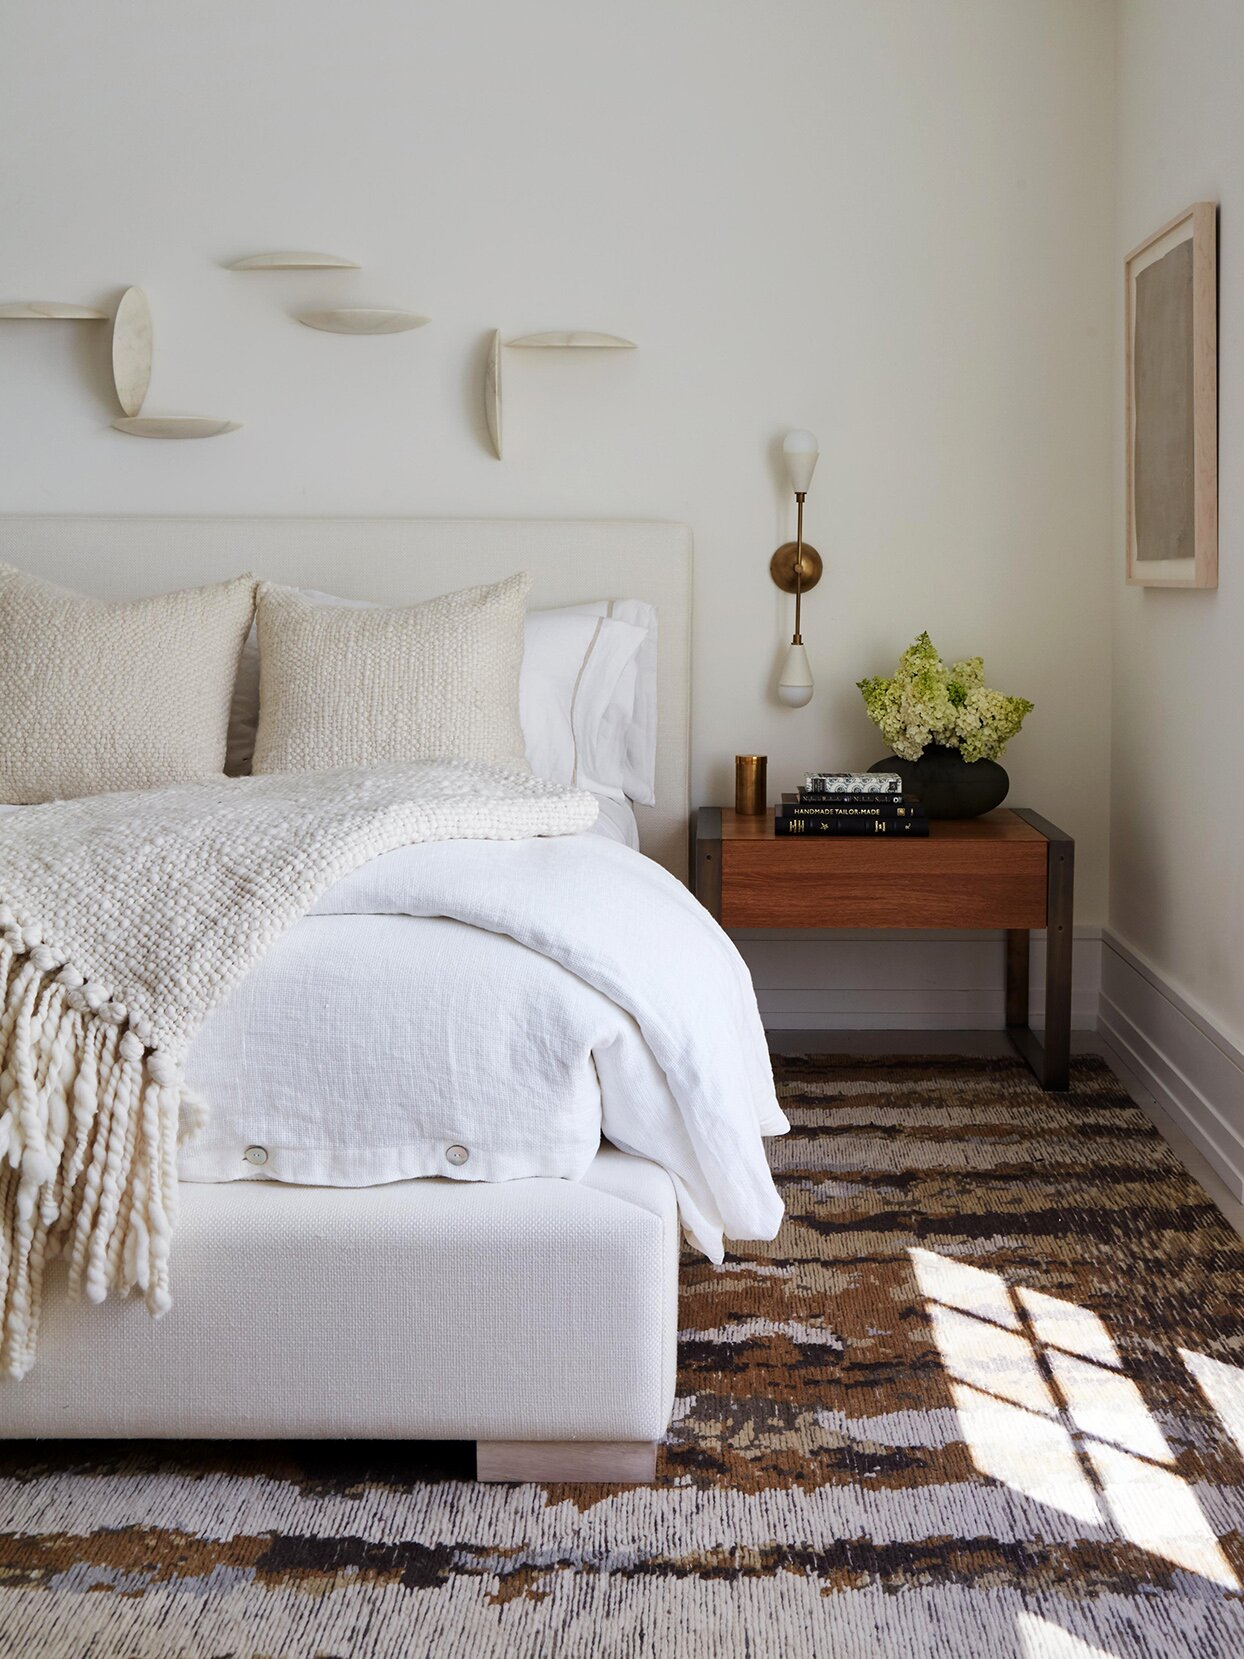 21 White Bedroom Ideas For A Serene Space Better Homes Gardens